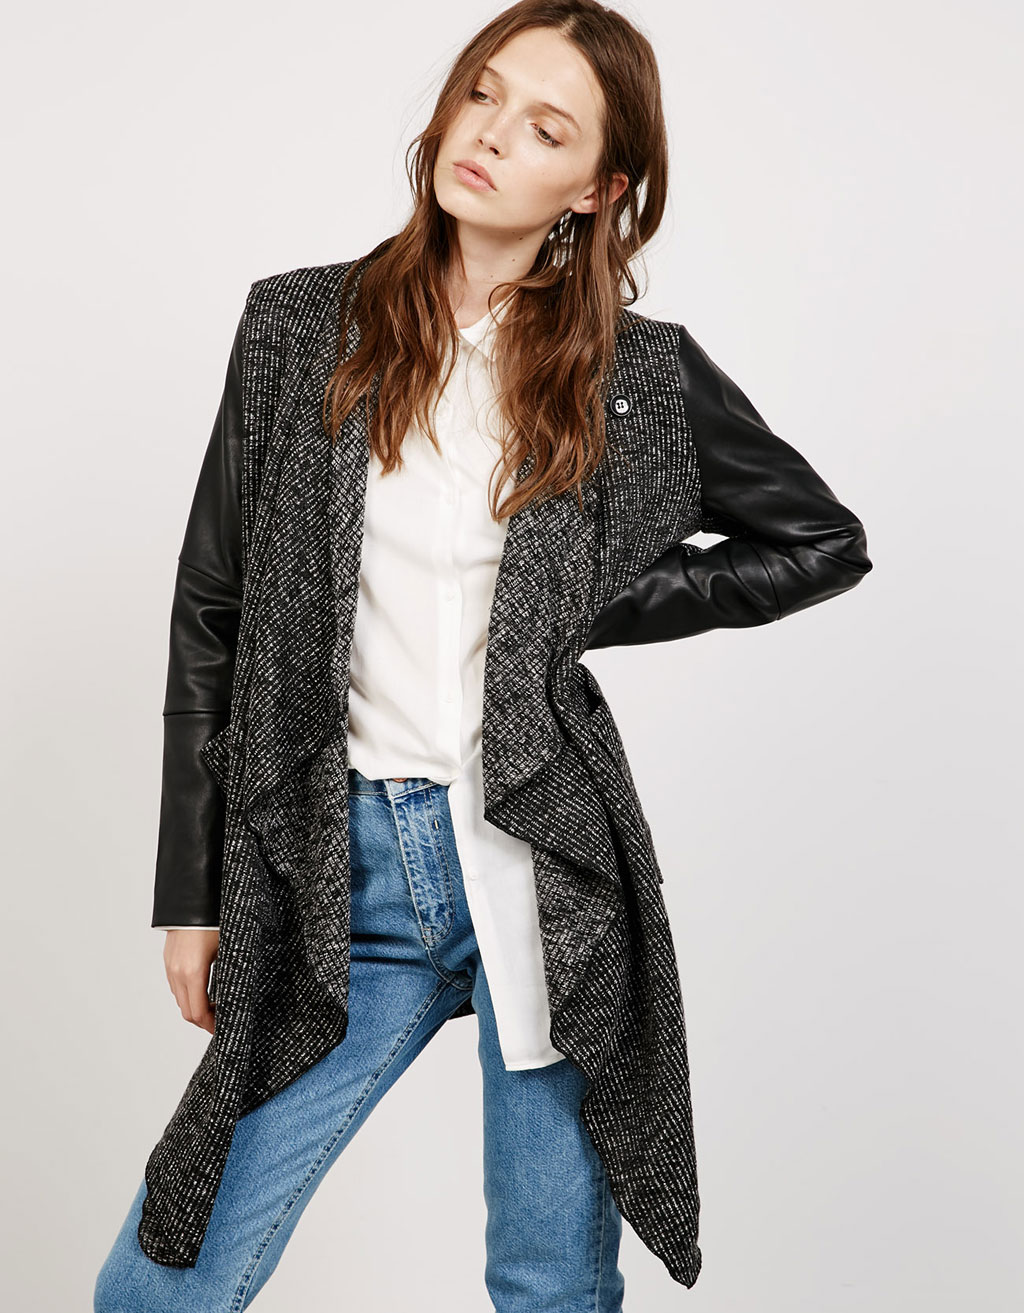 Pointed wrap coat with leather-effect sleeves